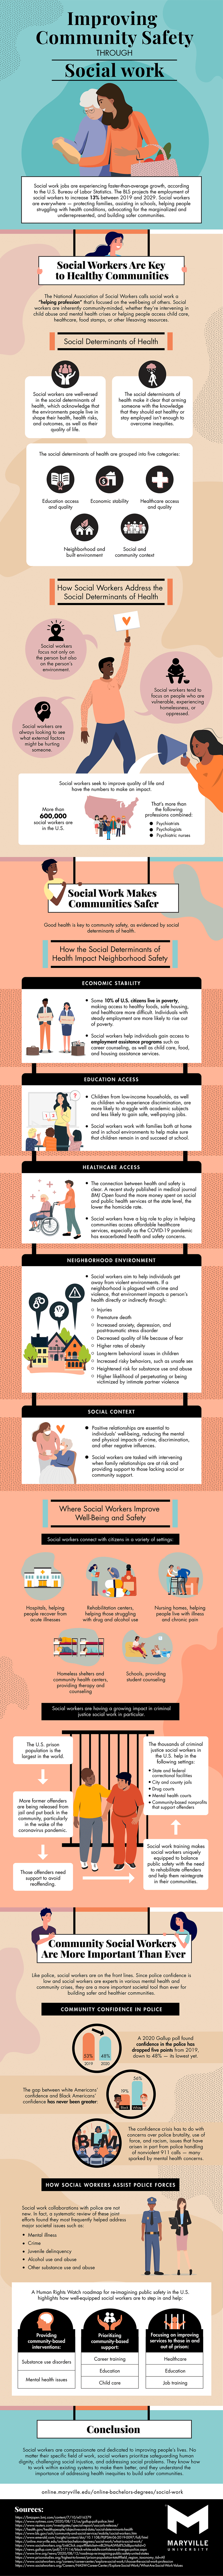 Information on how social workers improve community safety in many different ways.